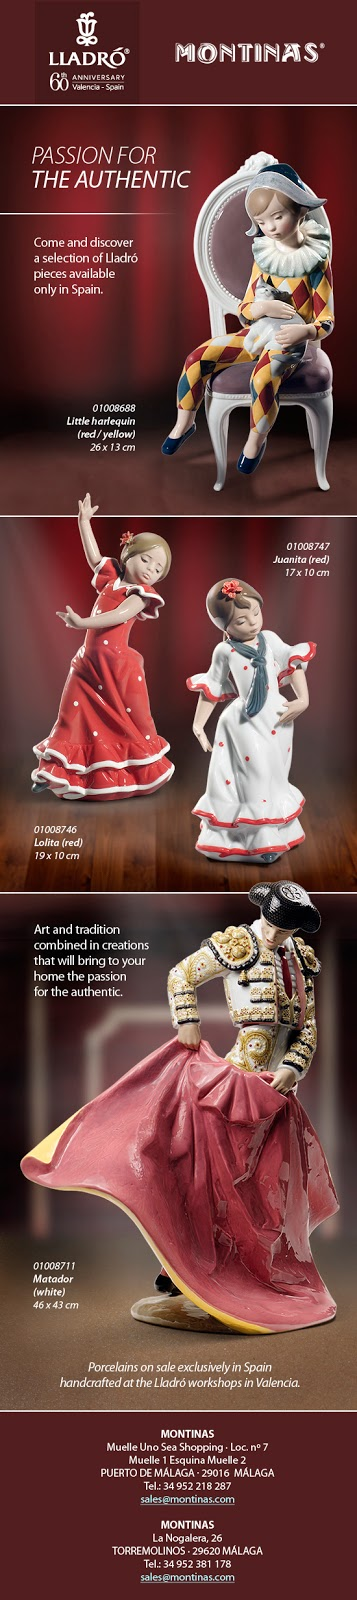 Lladro Passion for THE AUTHENTIC